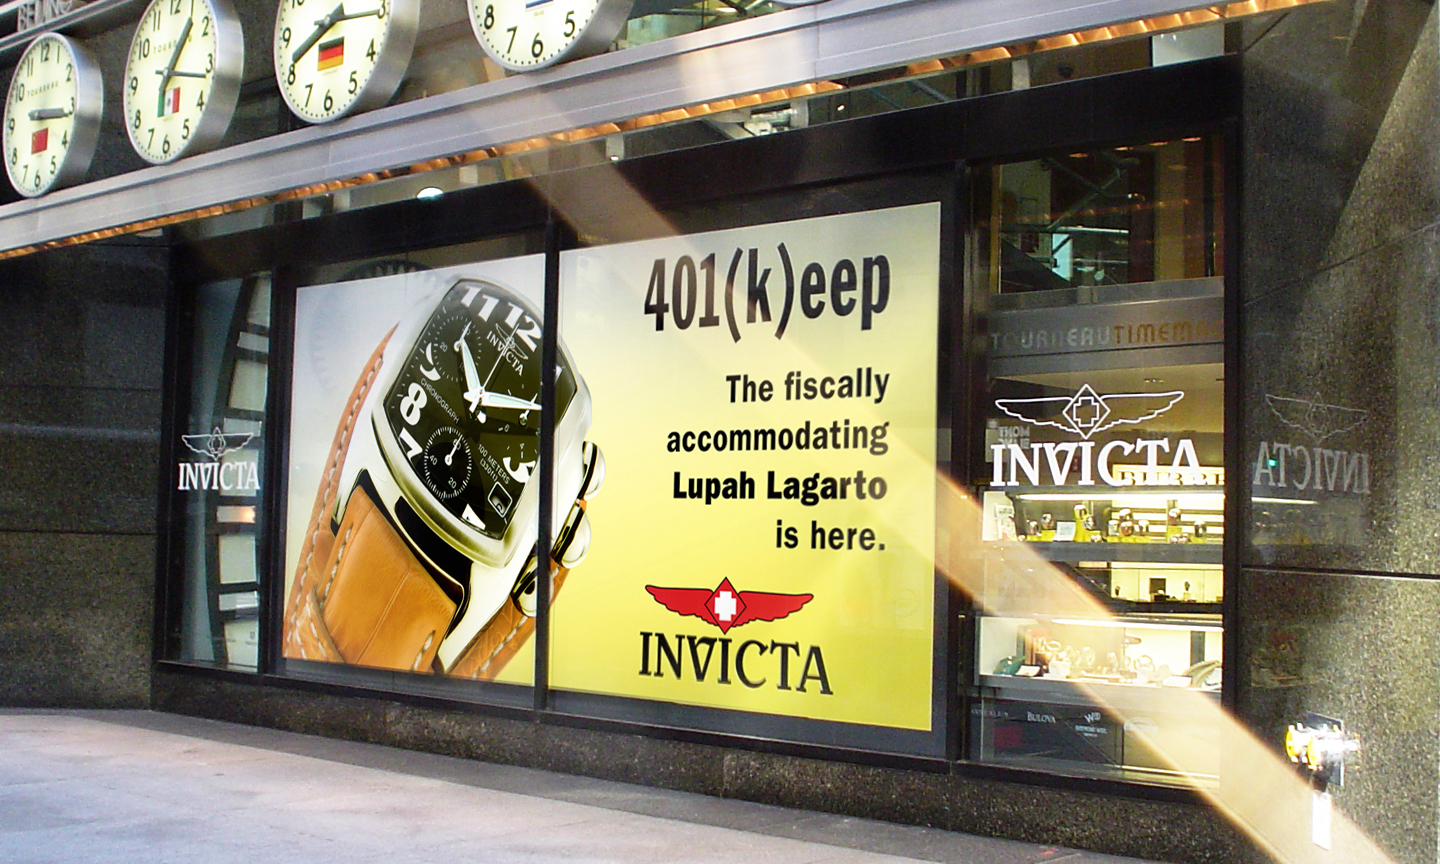 Invicta_Horizontal_Posters_Sized_04.jpg